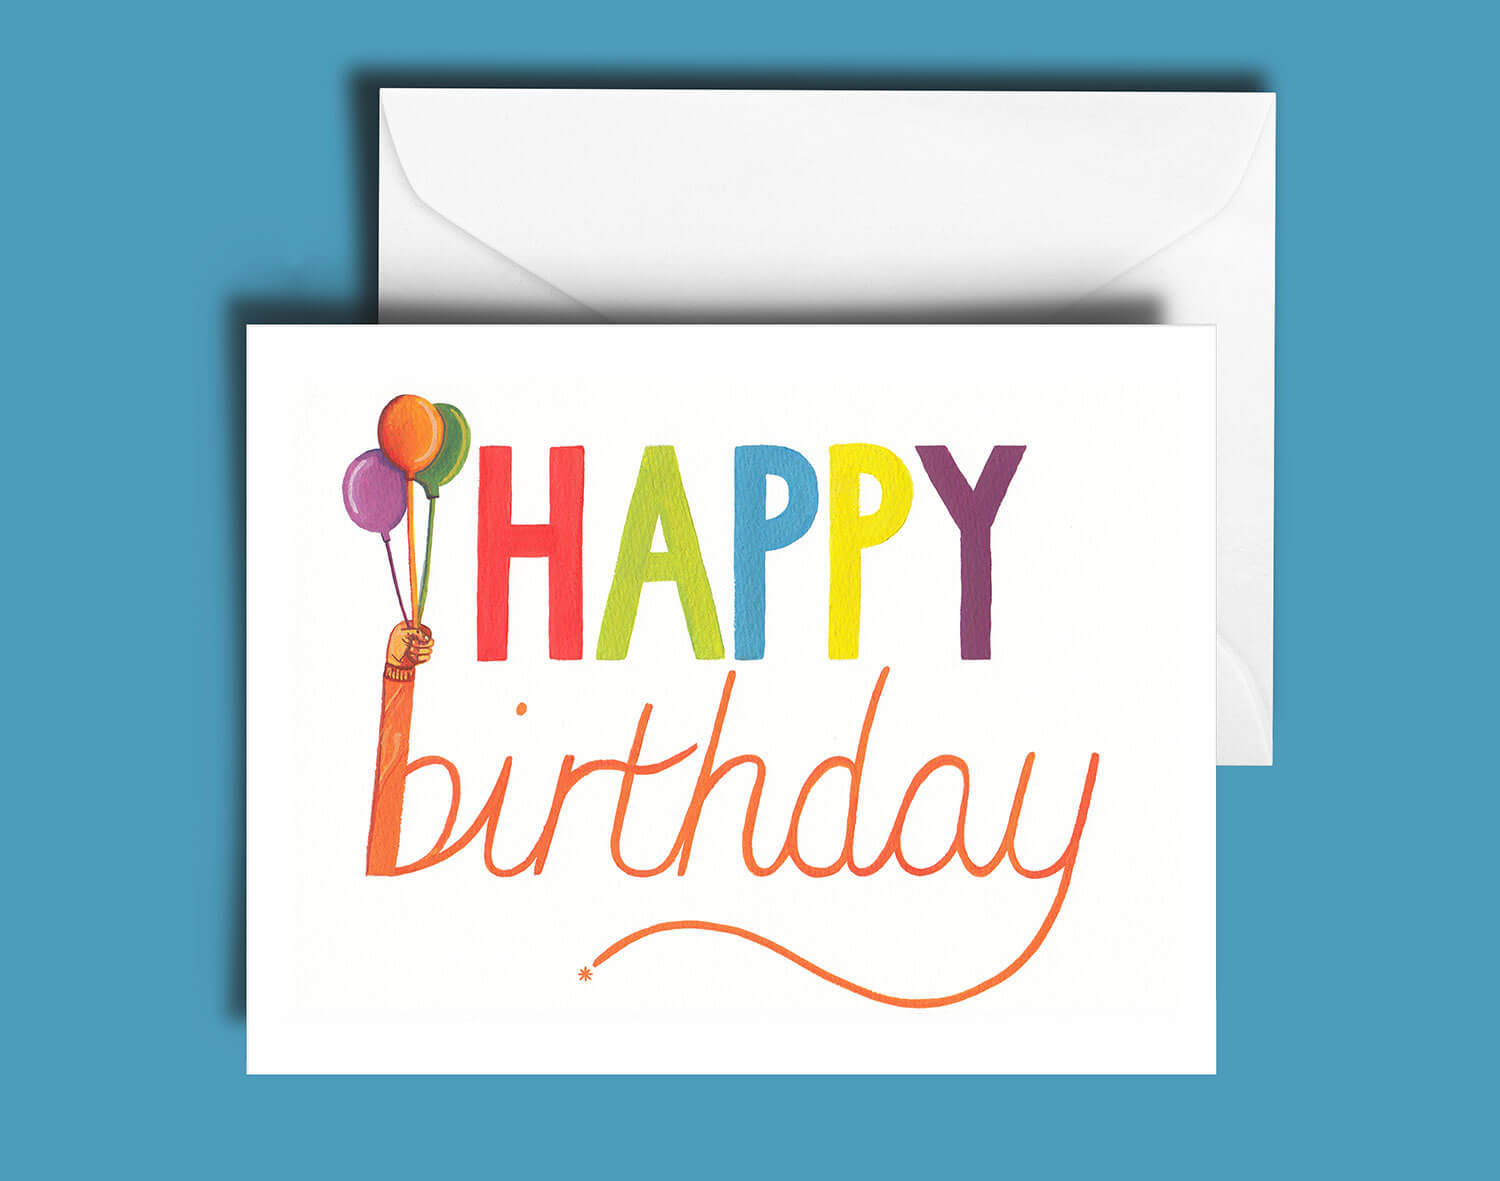 Buy the Happy Birthday Greetings Card